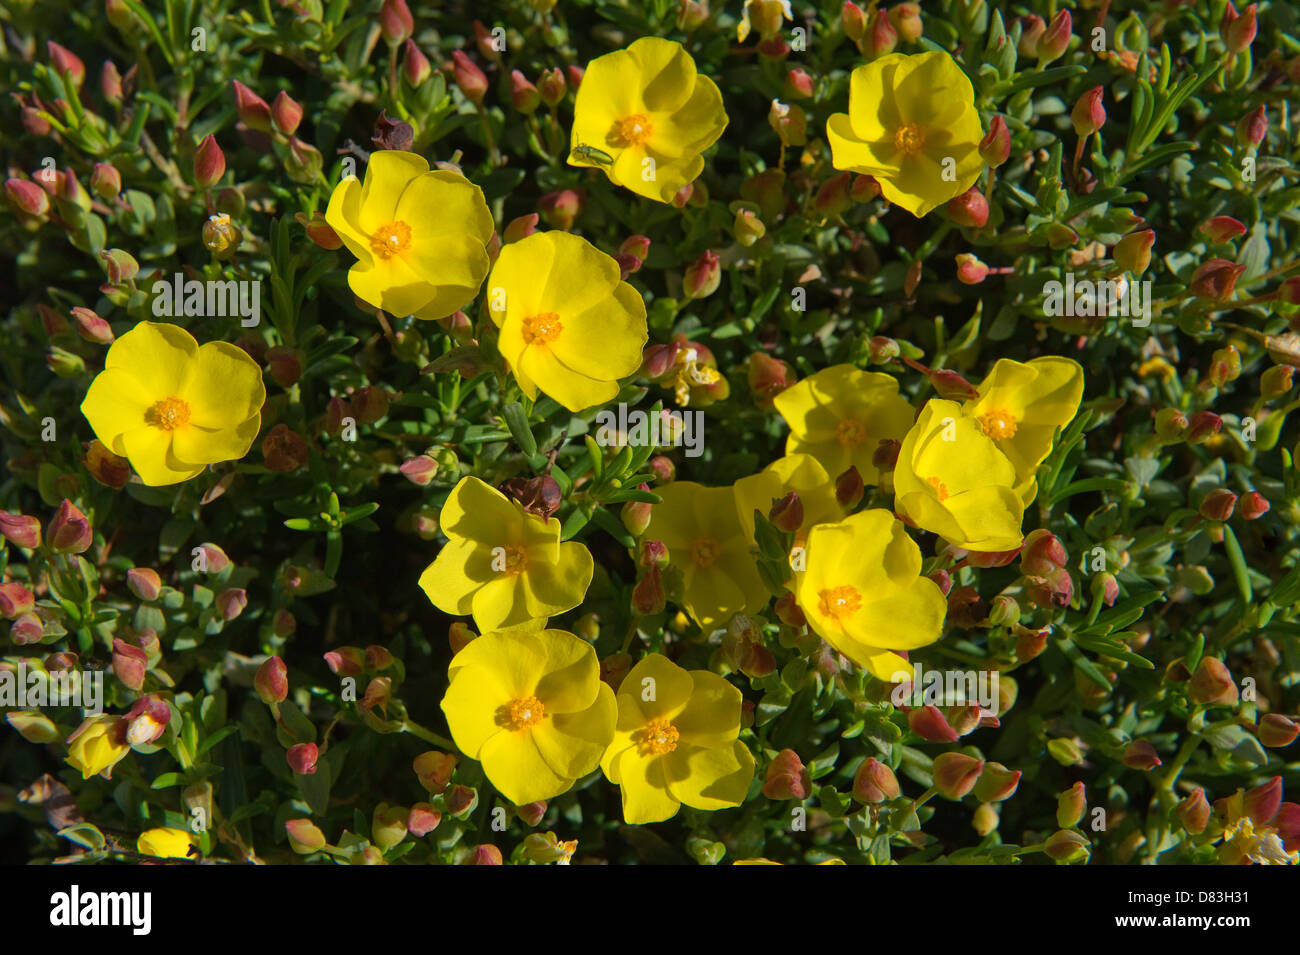 Coast rockrose (Halimium calycinum) flowers Vulnerable Plant Rota Vicentina coastal walk from Monte Clerigo to Arrifana - Stock Image